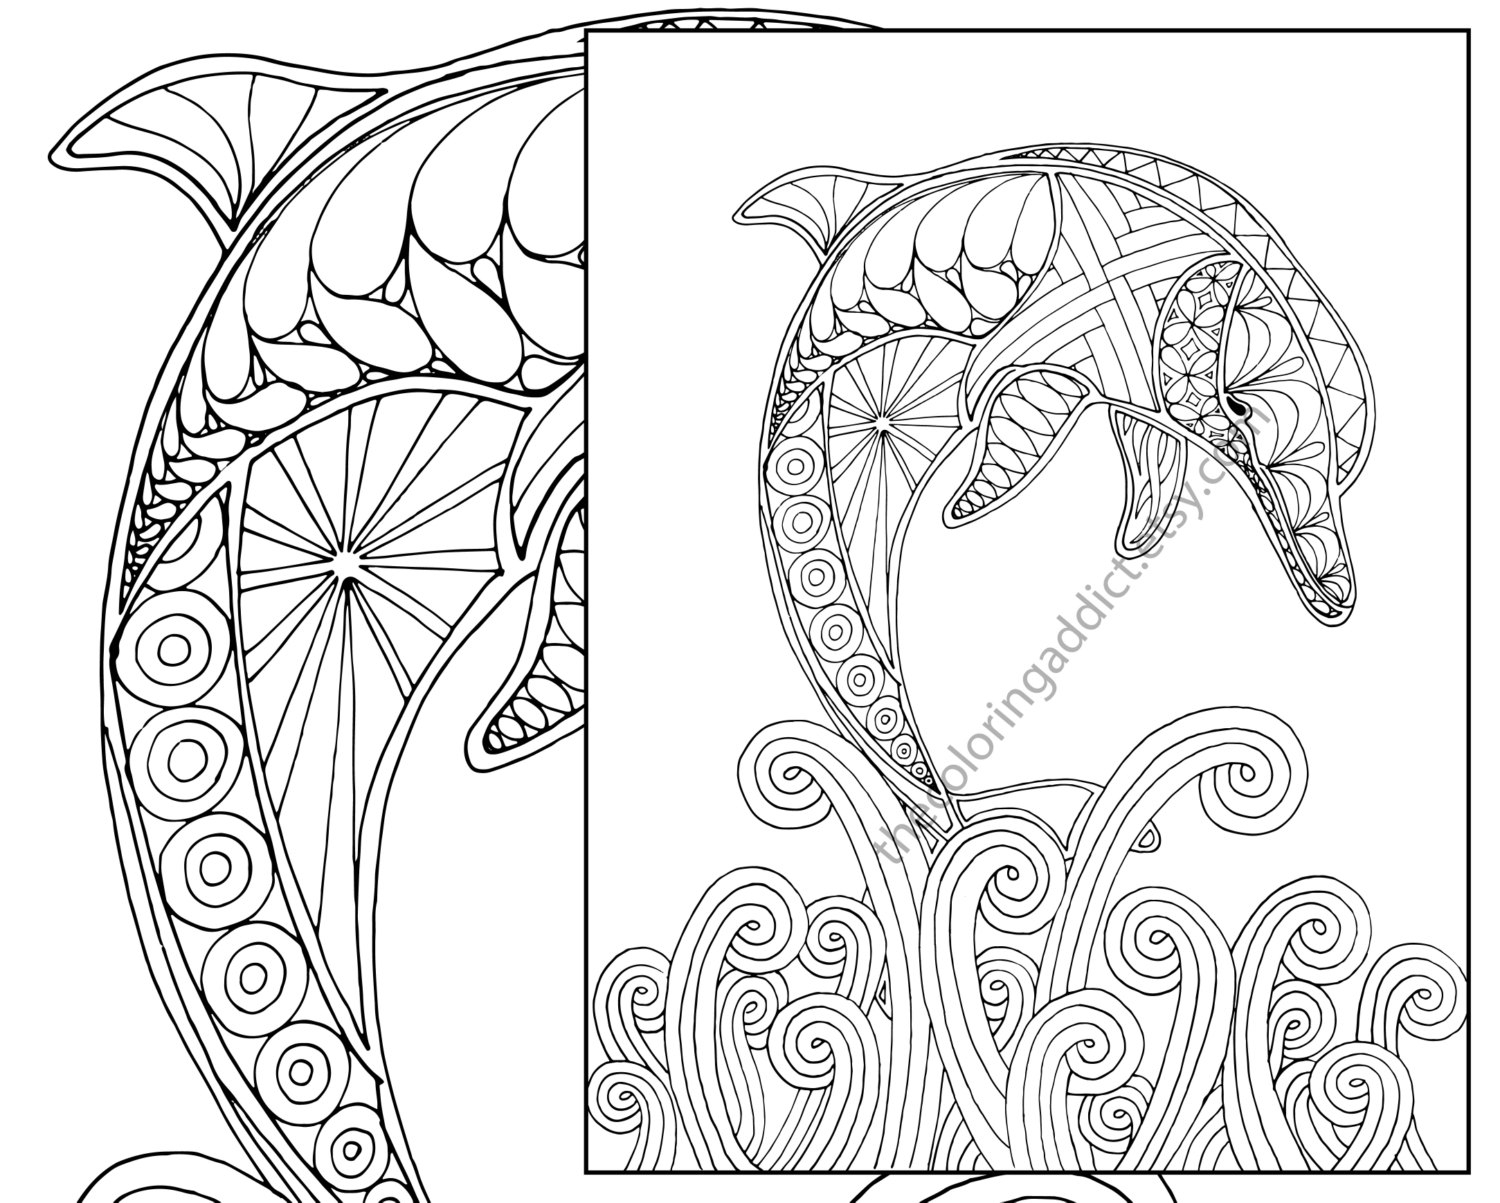 1500x1203 Best Of Ocean Coloring Pages For Adults Gallery Free Coloring Pages